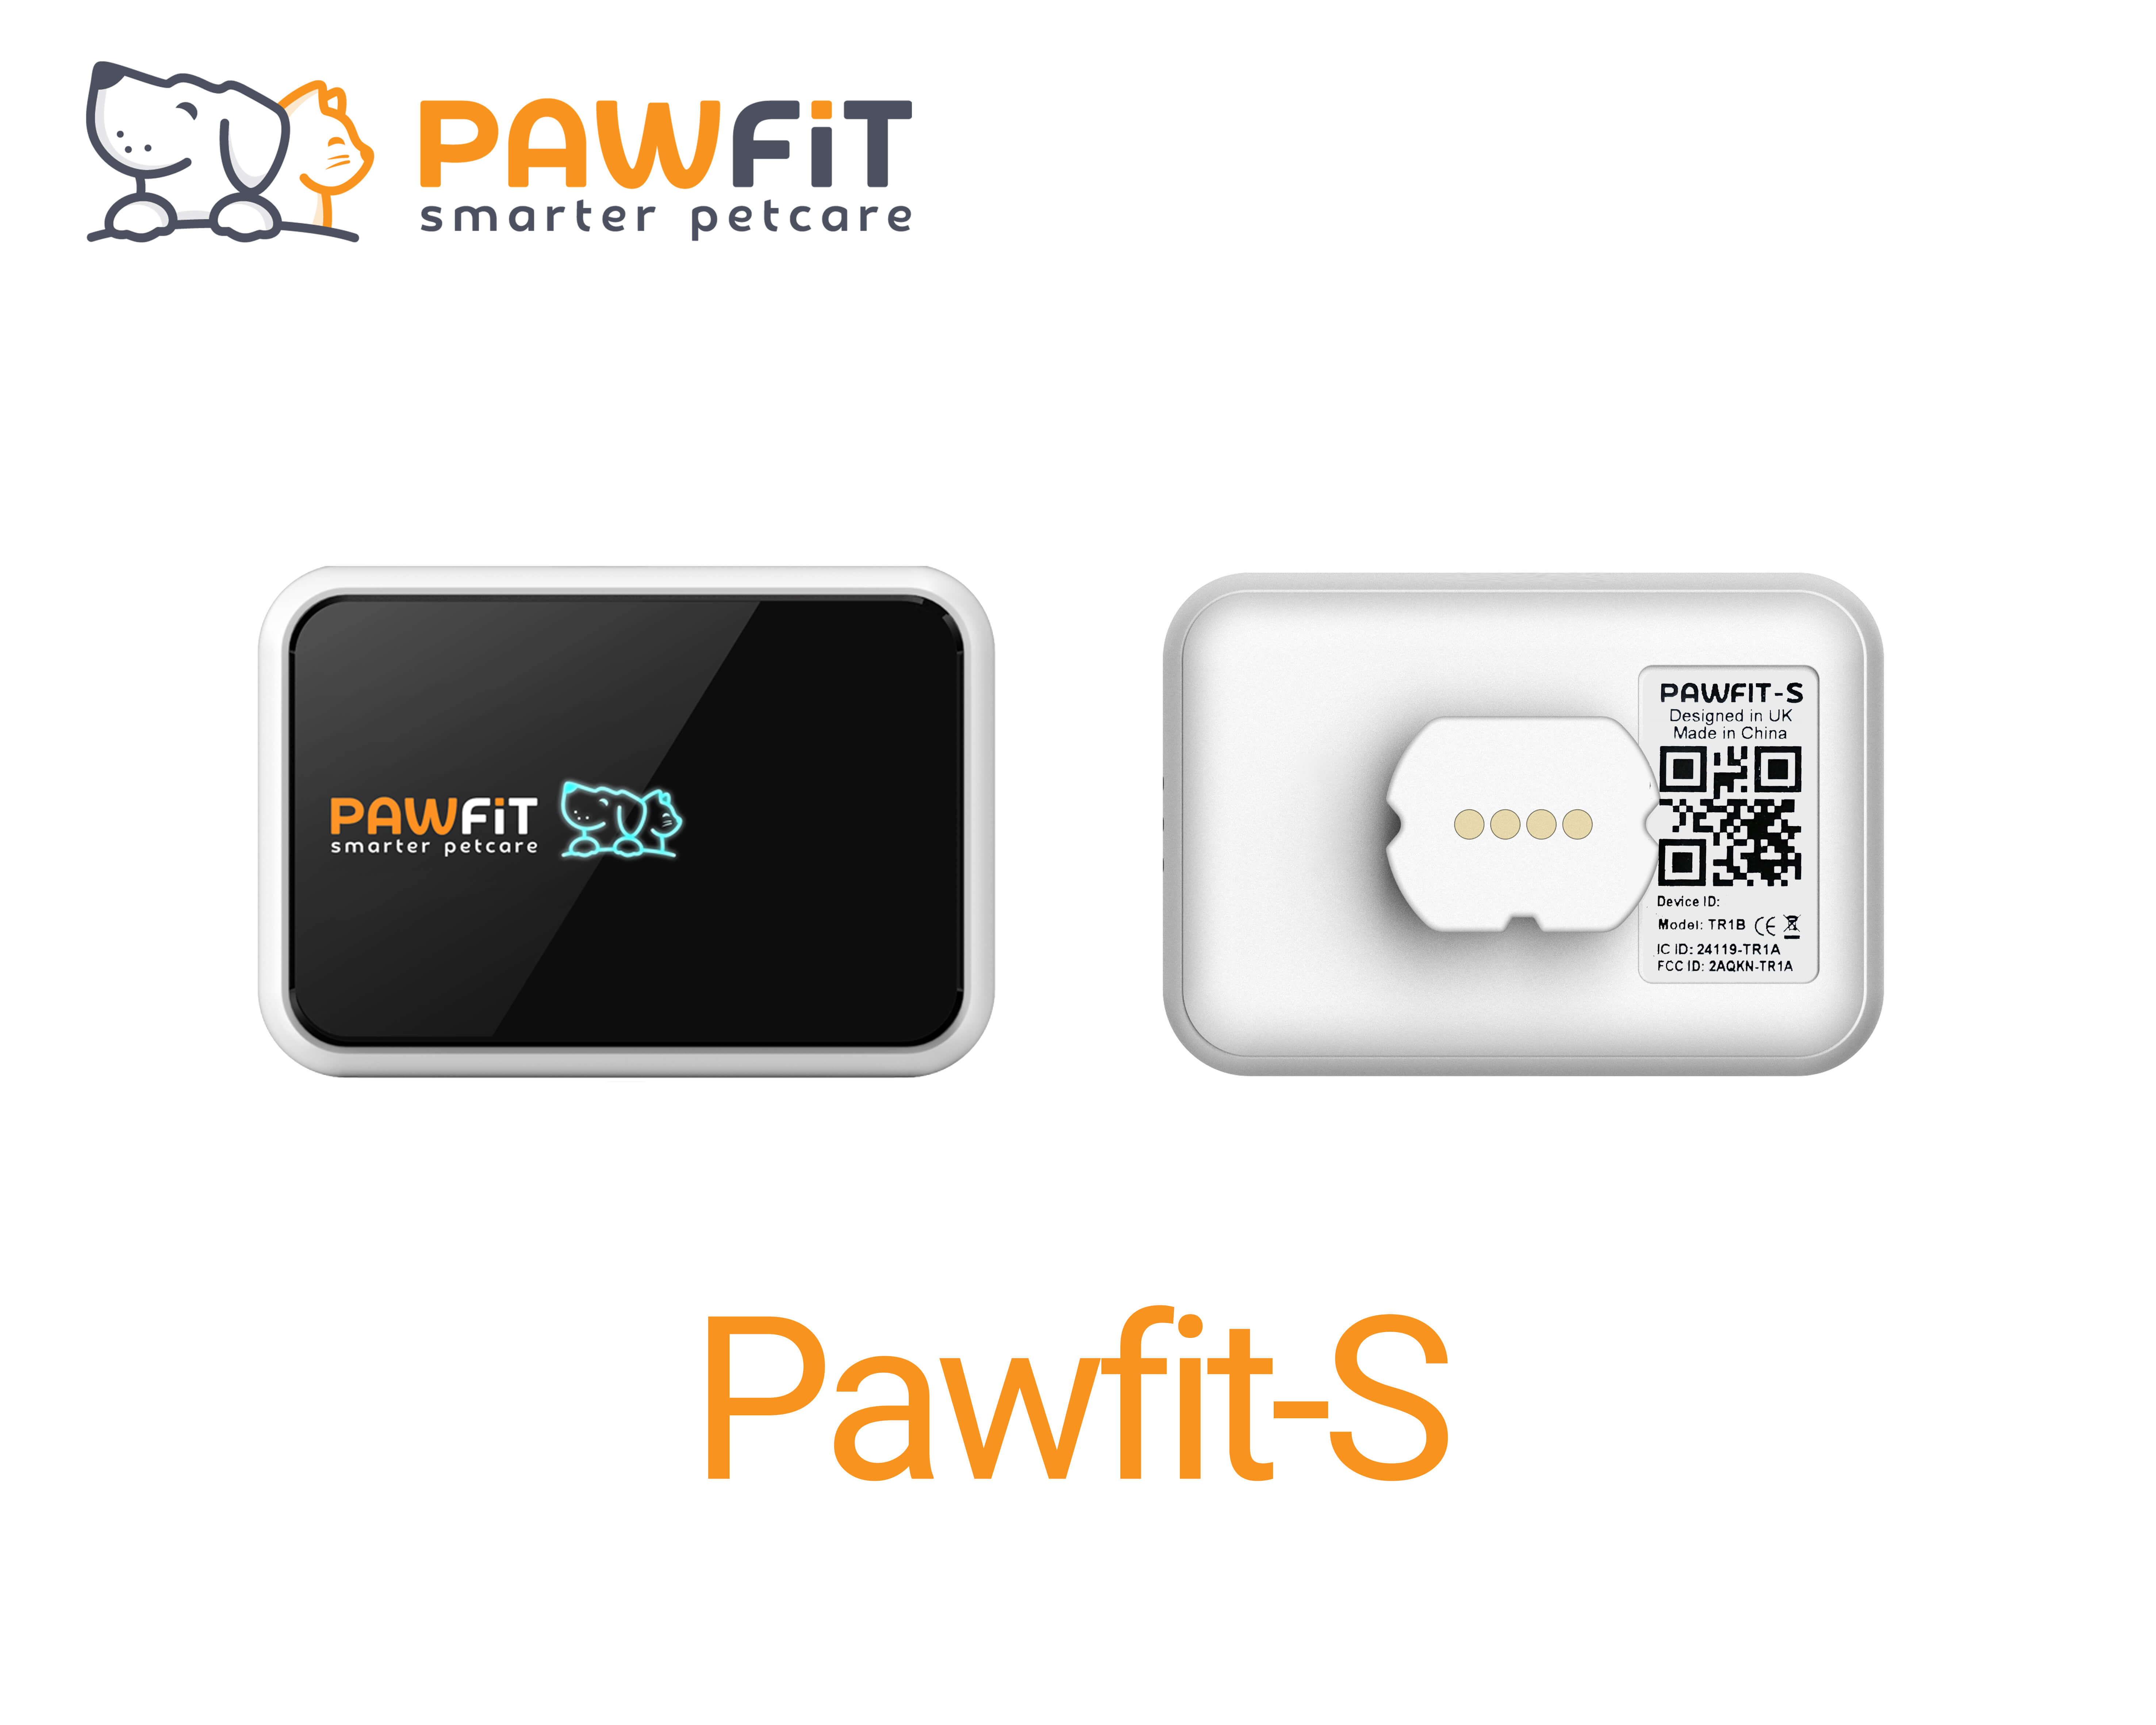 Pawfit-S front and back